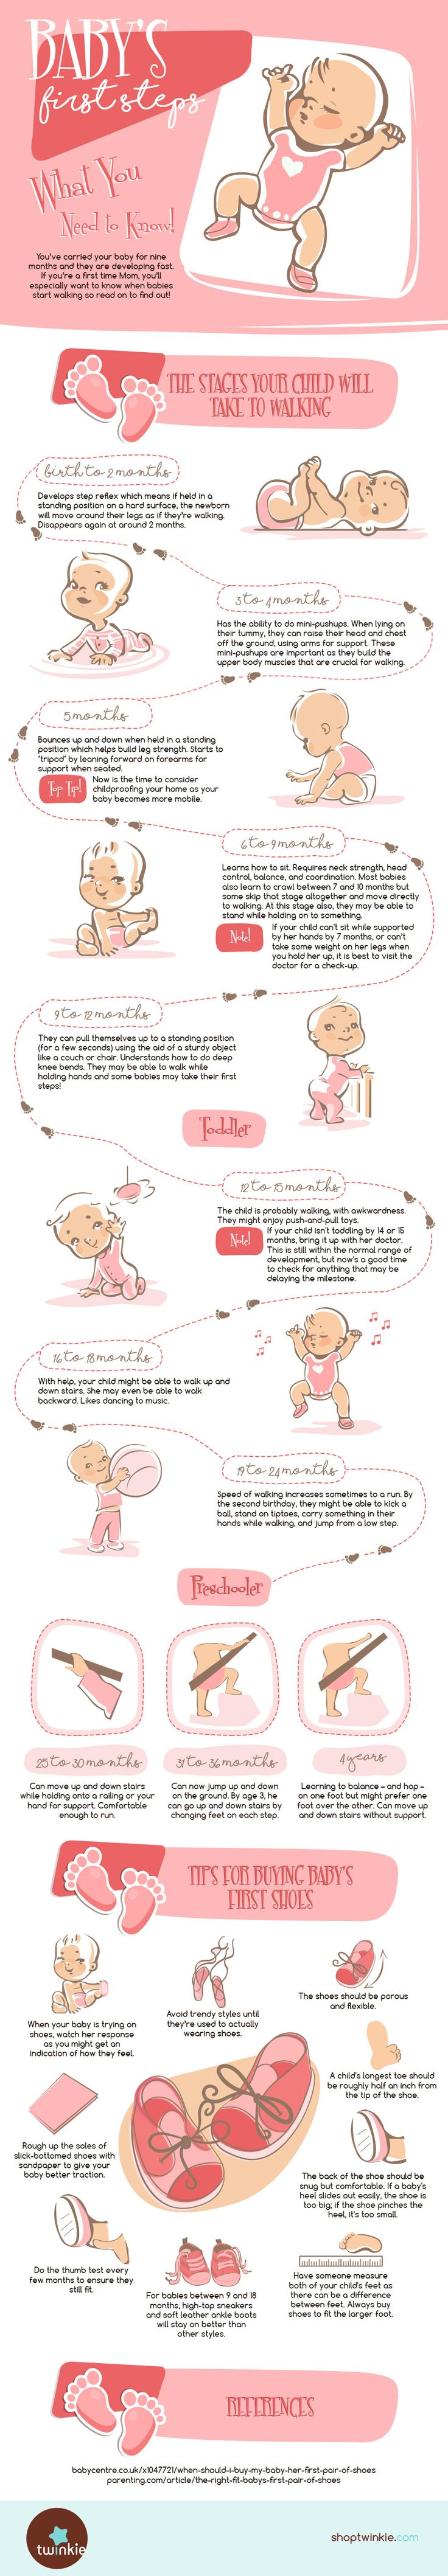 Here is an infographic courtesy of ShopTwinkie that is all about your baby's first steps. It should prove to be useful to new moms and dads while parenting their babies and toddlers.